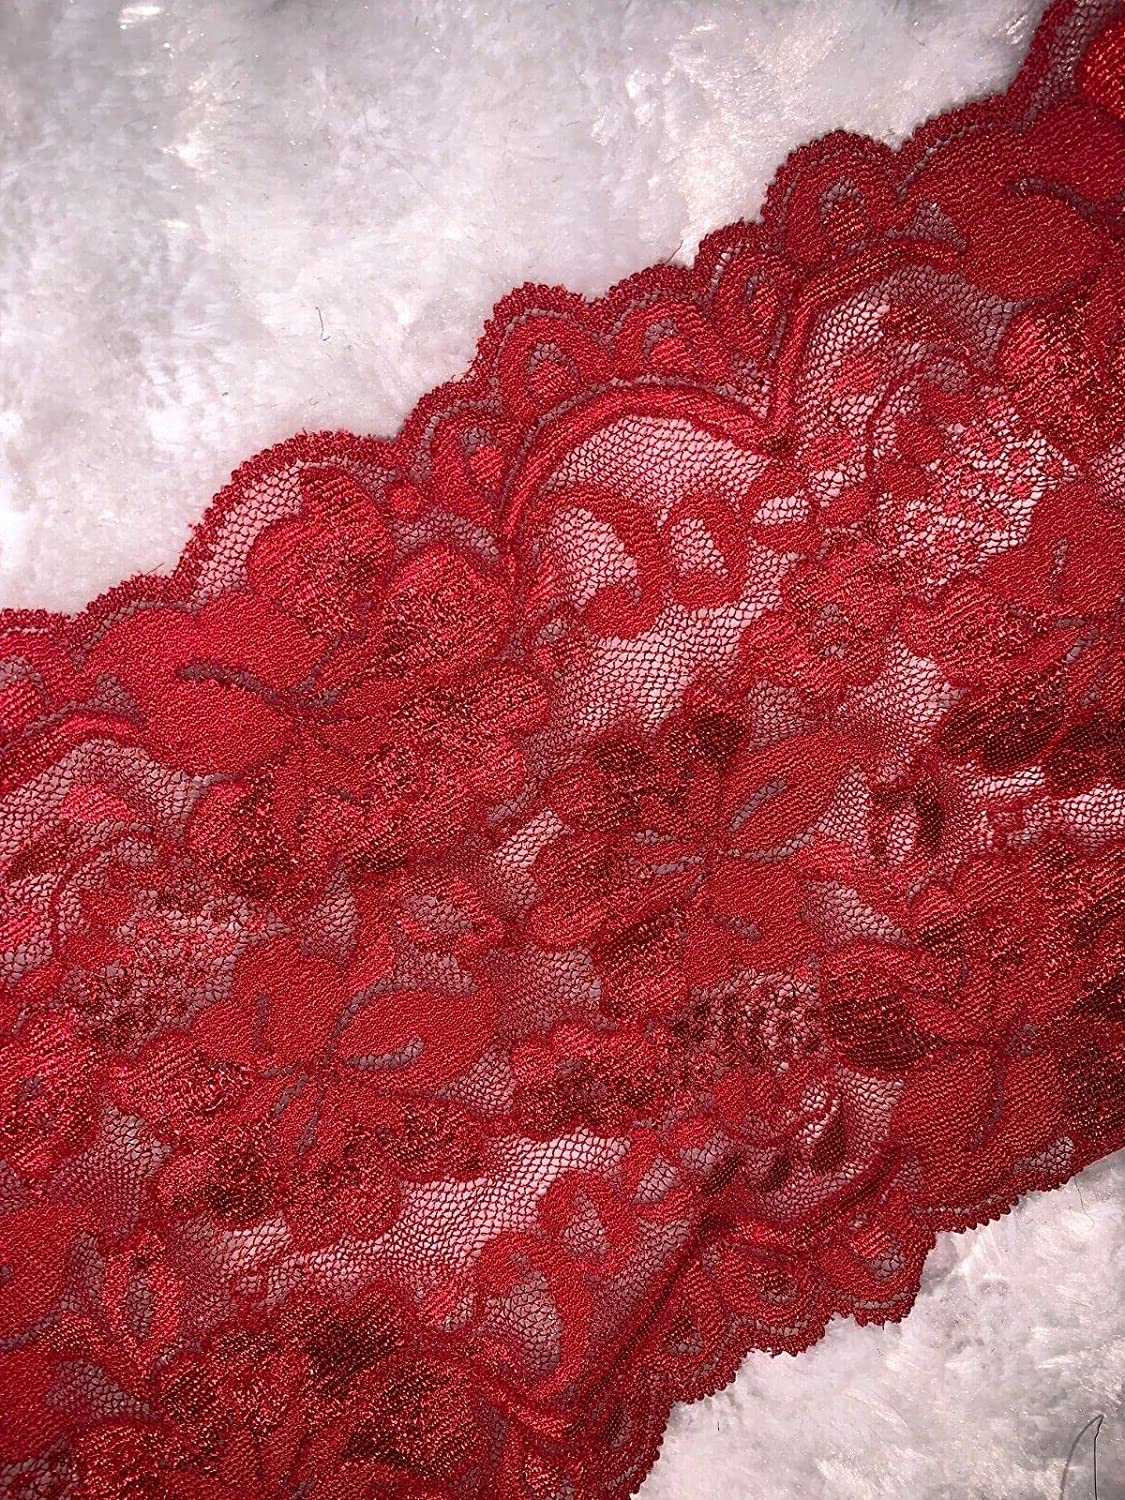 5 Yards Dark Cherry Sale special price Red Lingerie 5.25